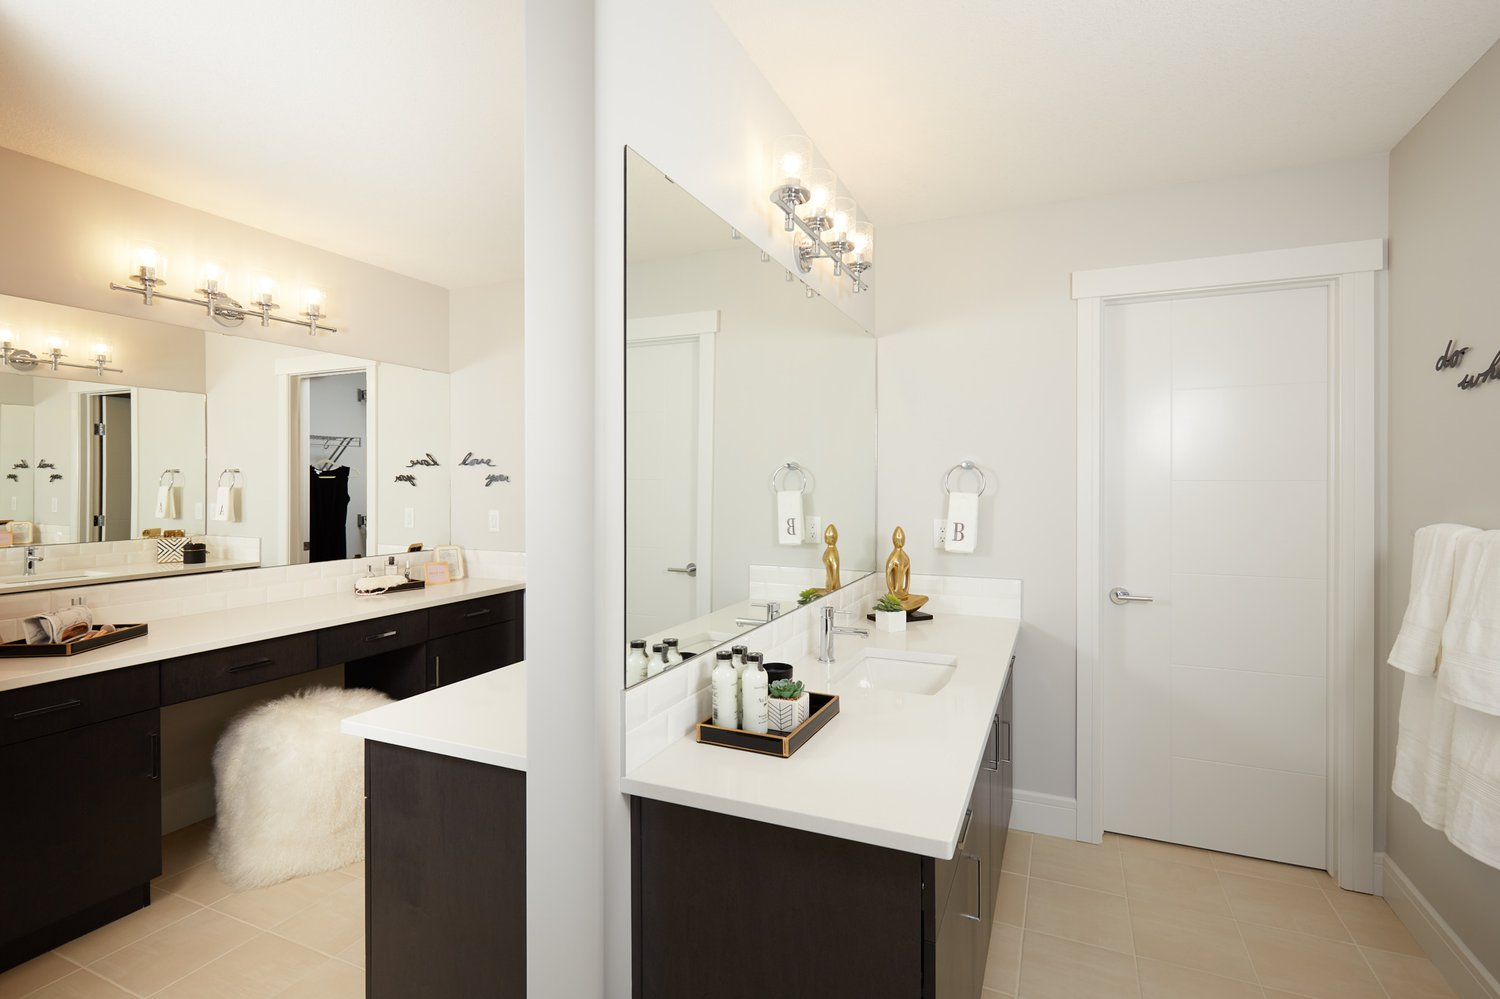 The Uplands at Riverview - Kalliope Showhome